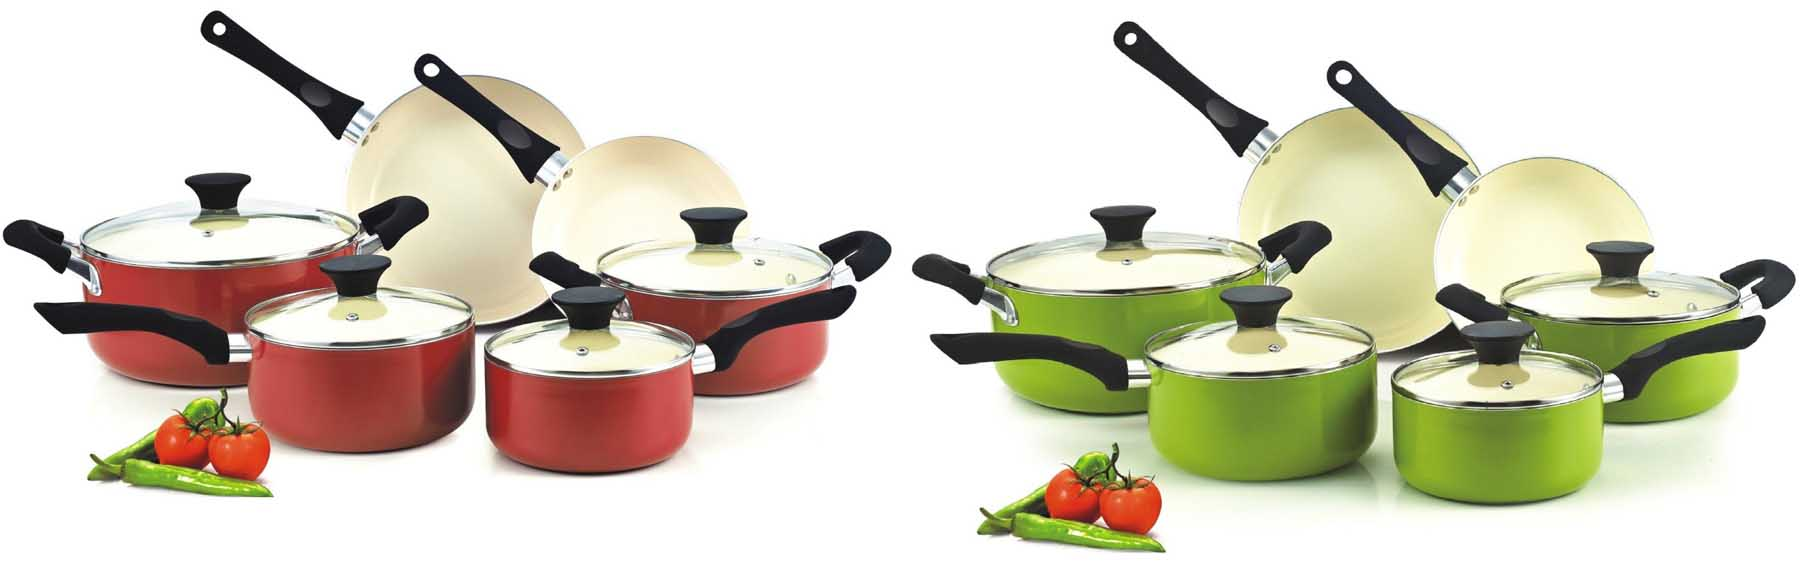 cook n home nc 00359 nonstick ceramic coating colorful